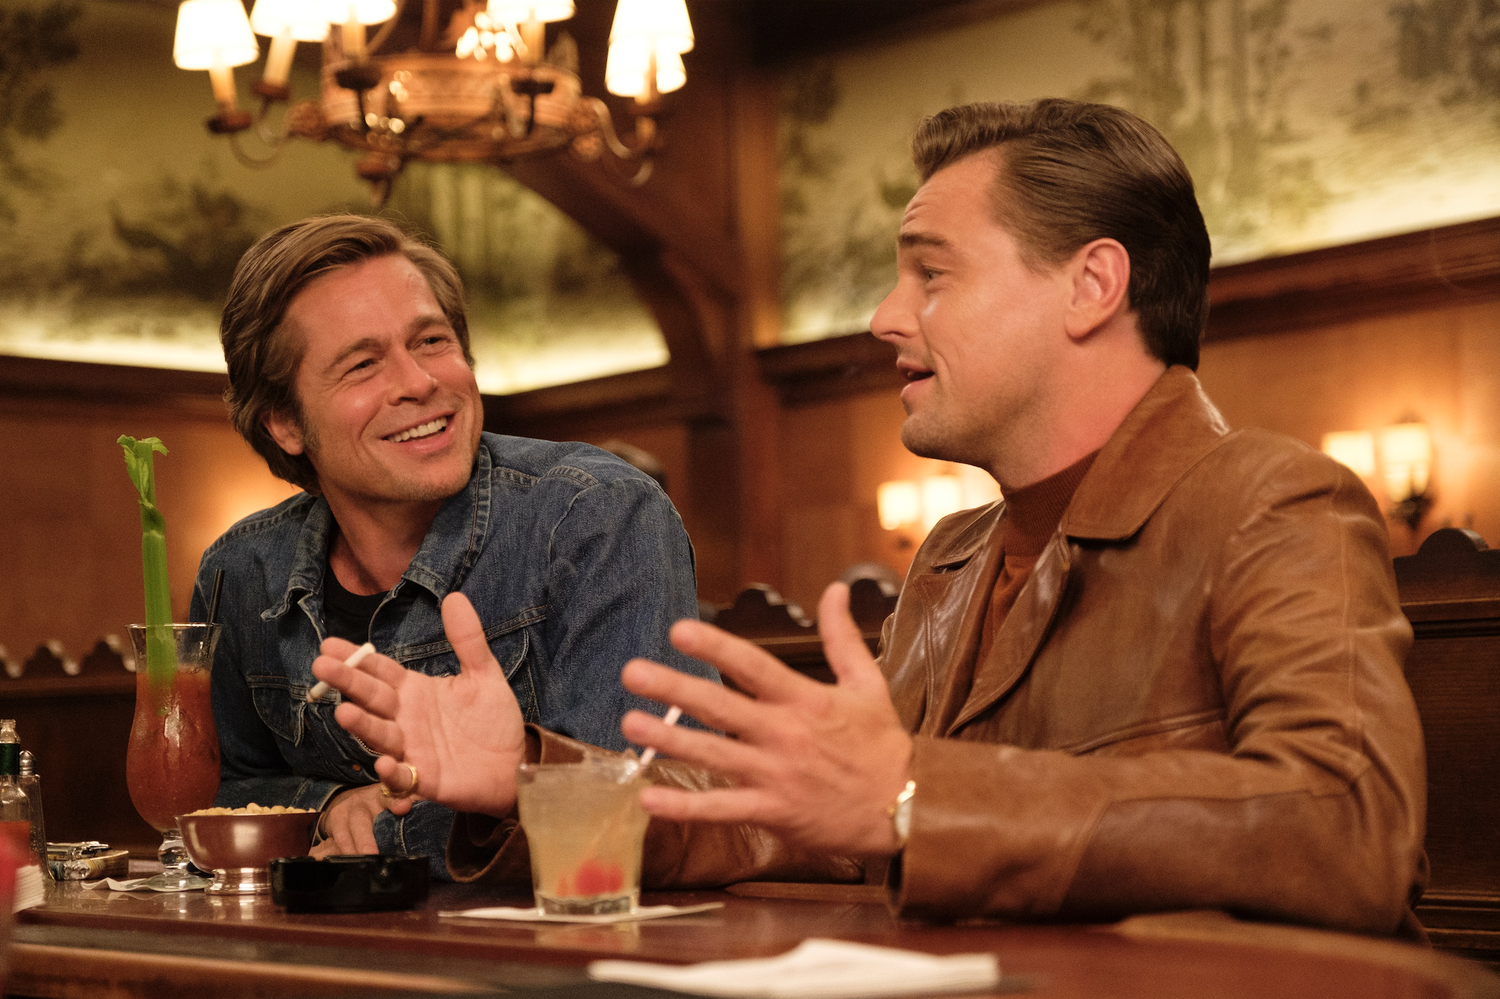 Hollywoods Reductive Narratives About >> From Cannes Once Upon A Time In Hollywood Is Nostalgic Fun If